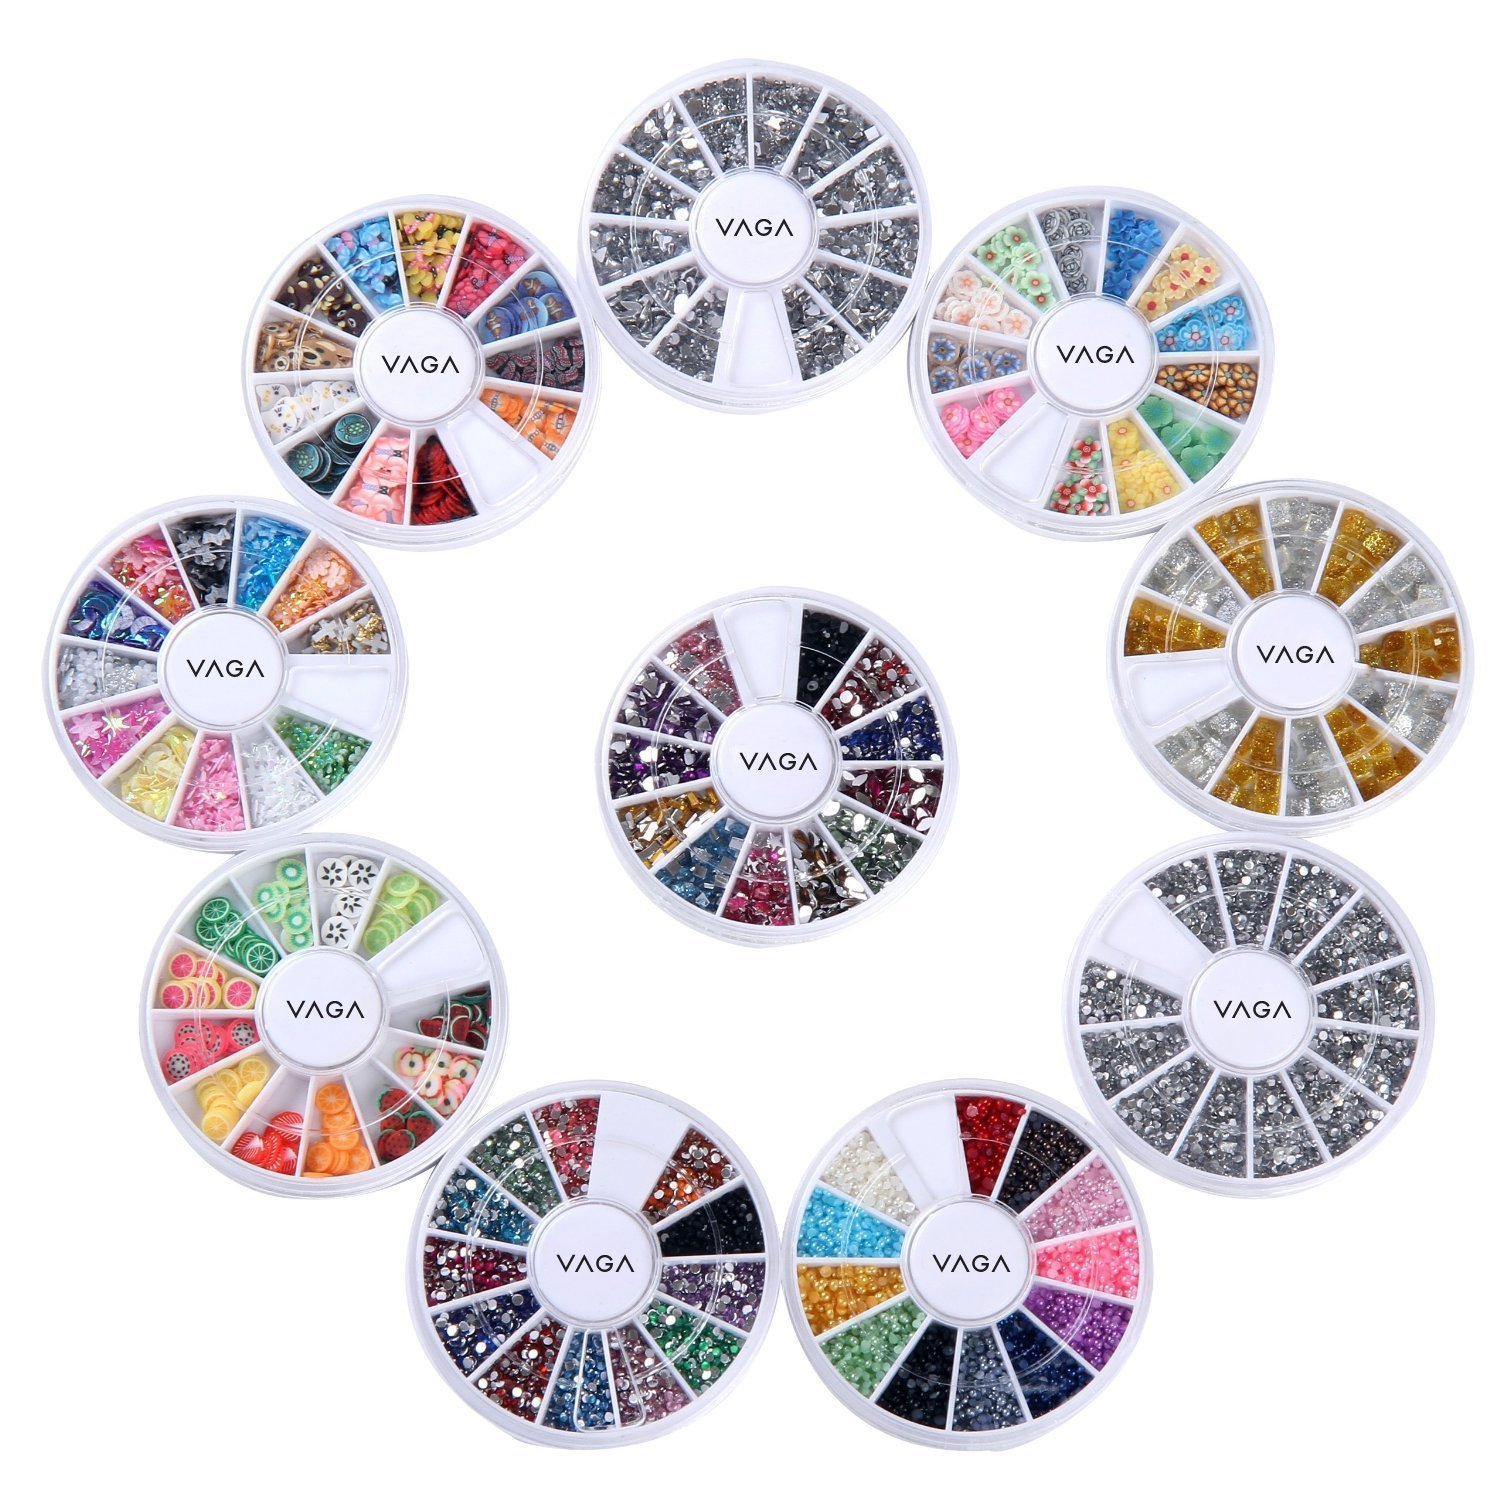 Amazing Value Set of 10 Wheels Premium Manicure Nail Art Decorations Many Colours / Shapes By VAGA 036